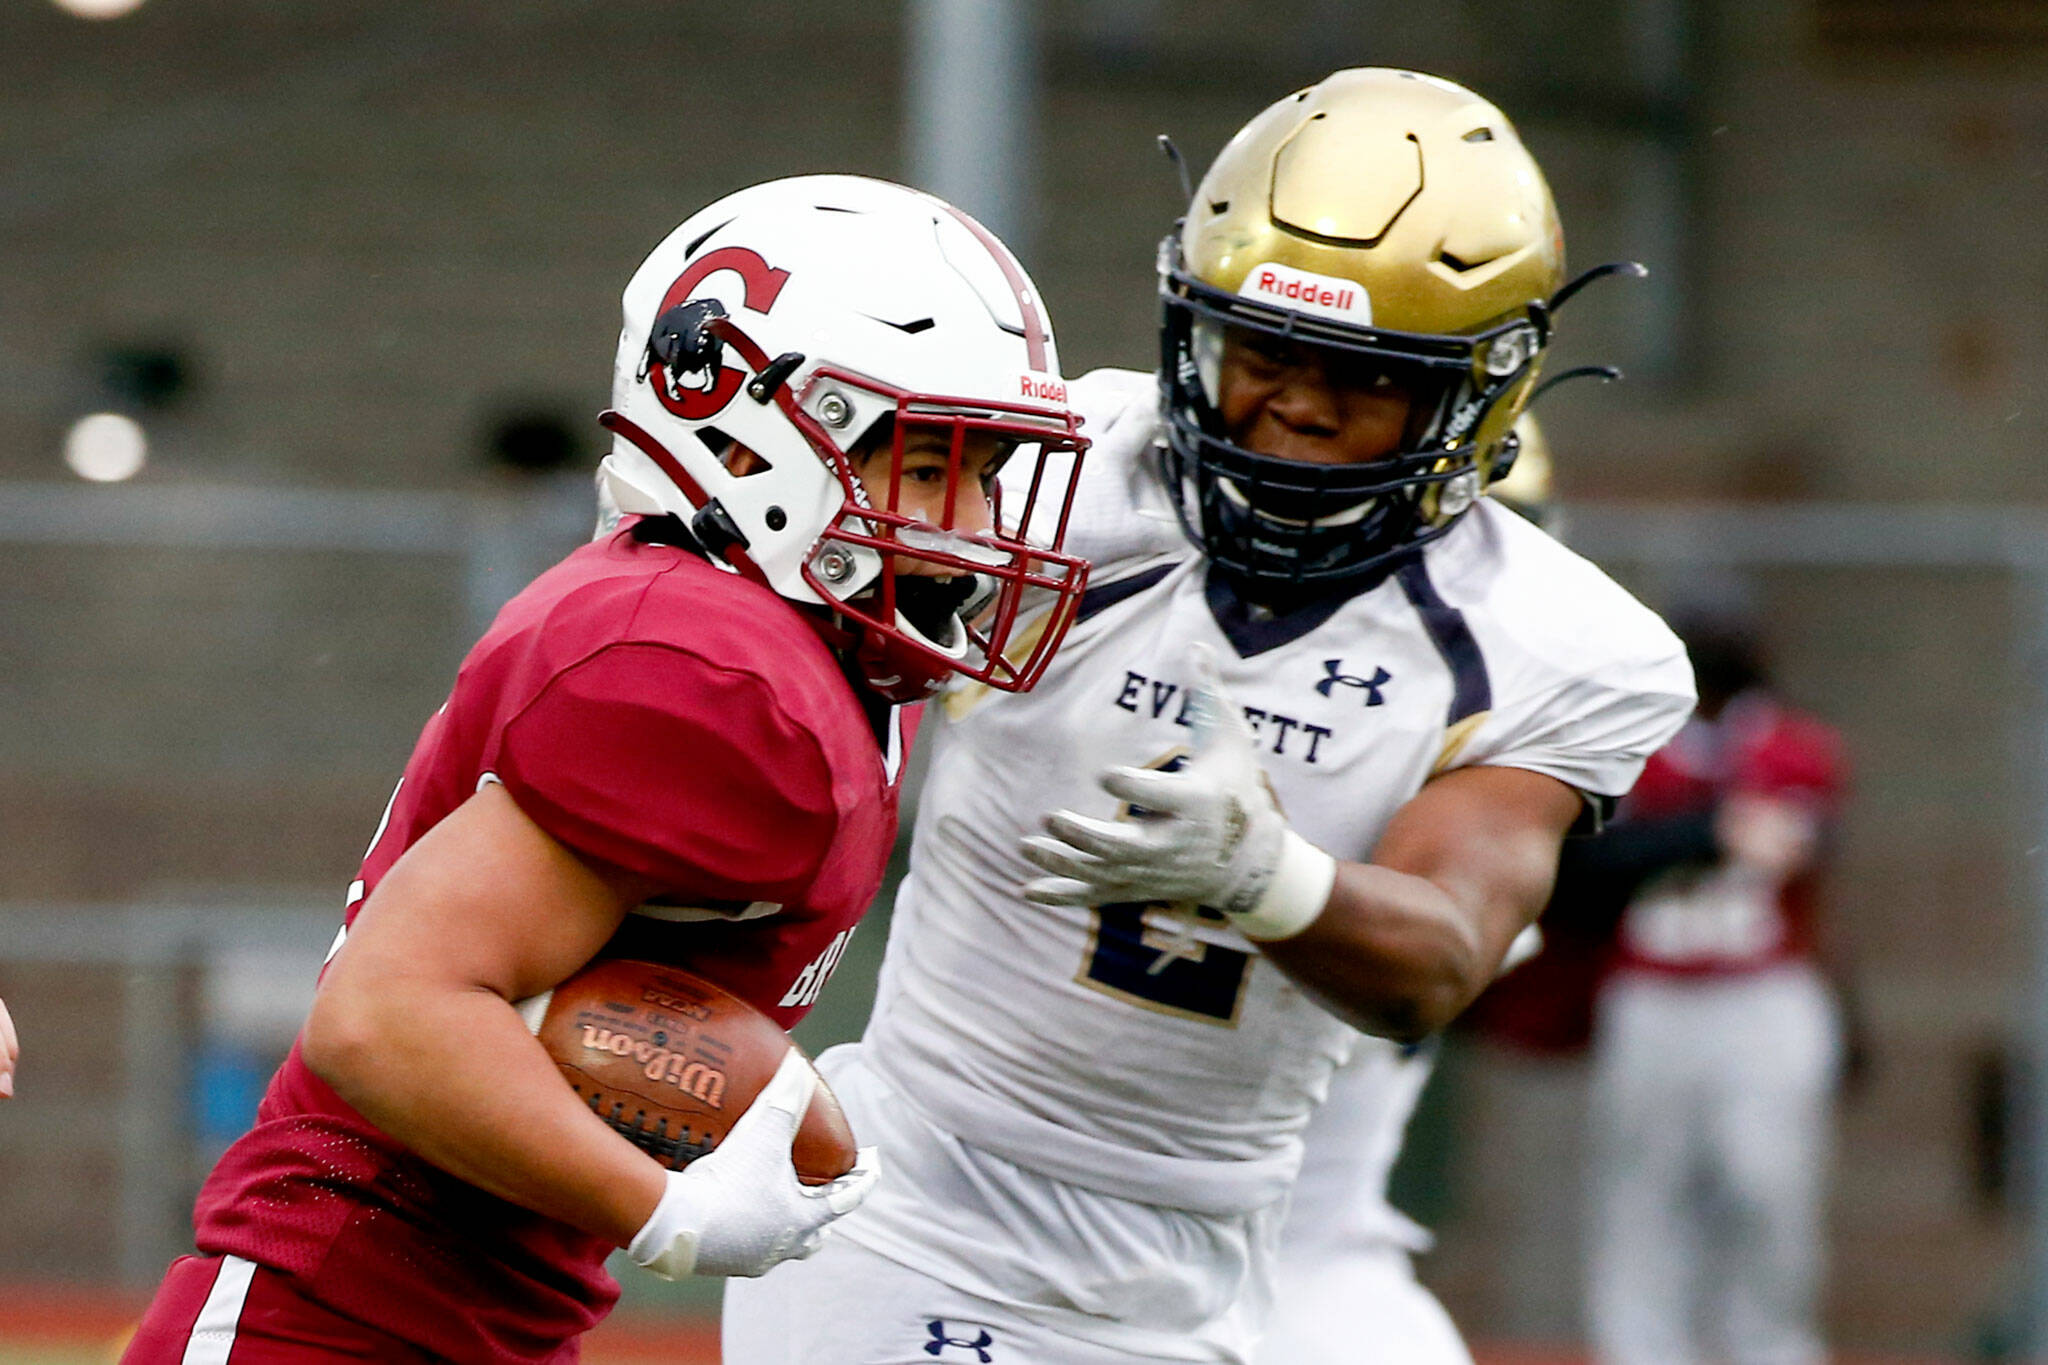 The annual Battle of Broadway between Everett High and Cascade High at Everett Memorial Stadium Friday night on March 19, 2021. (Kevin Clark / The Herald)